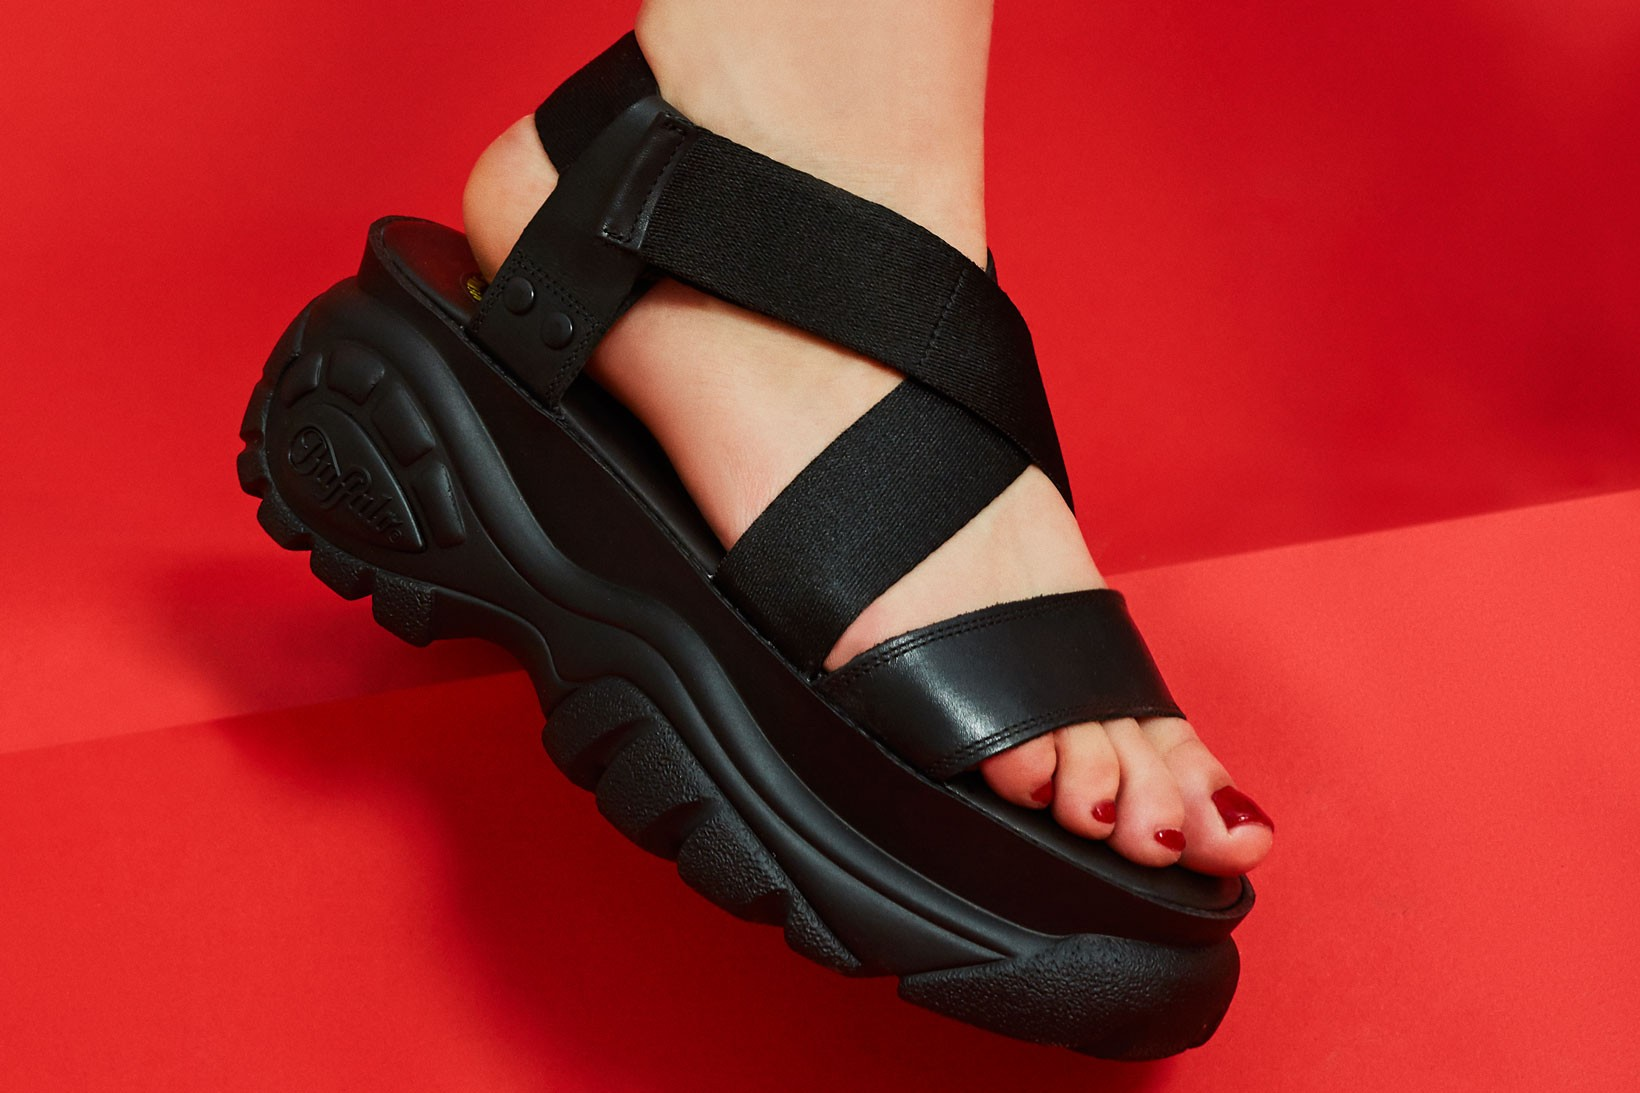 Chunky \u0026 Ugly Sandals for Spring/Summer